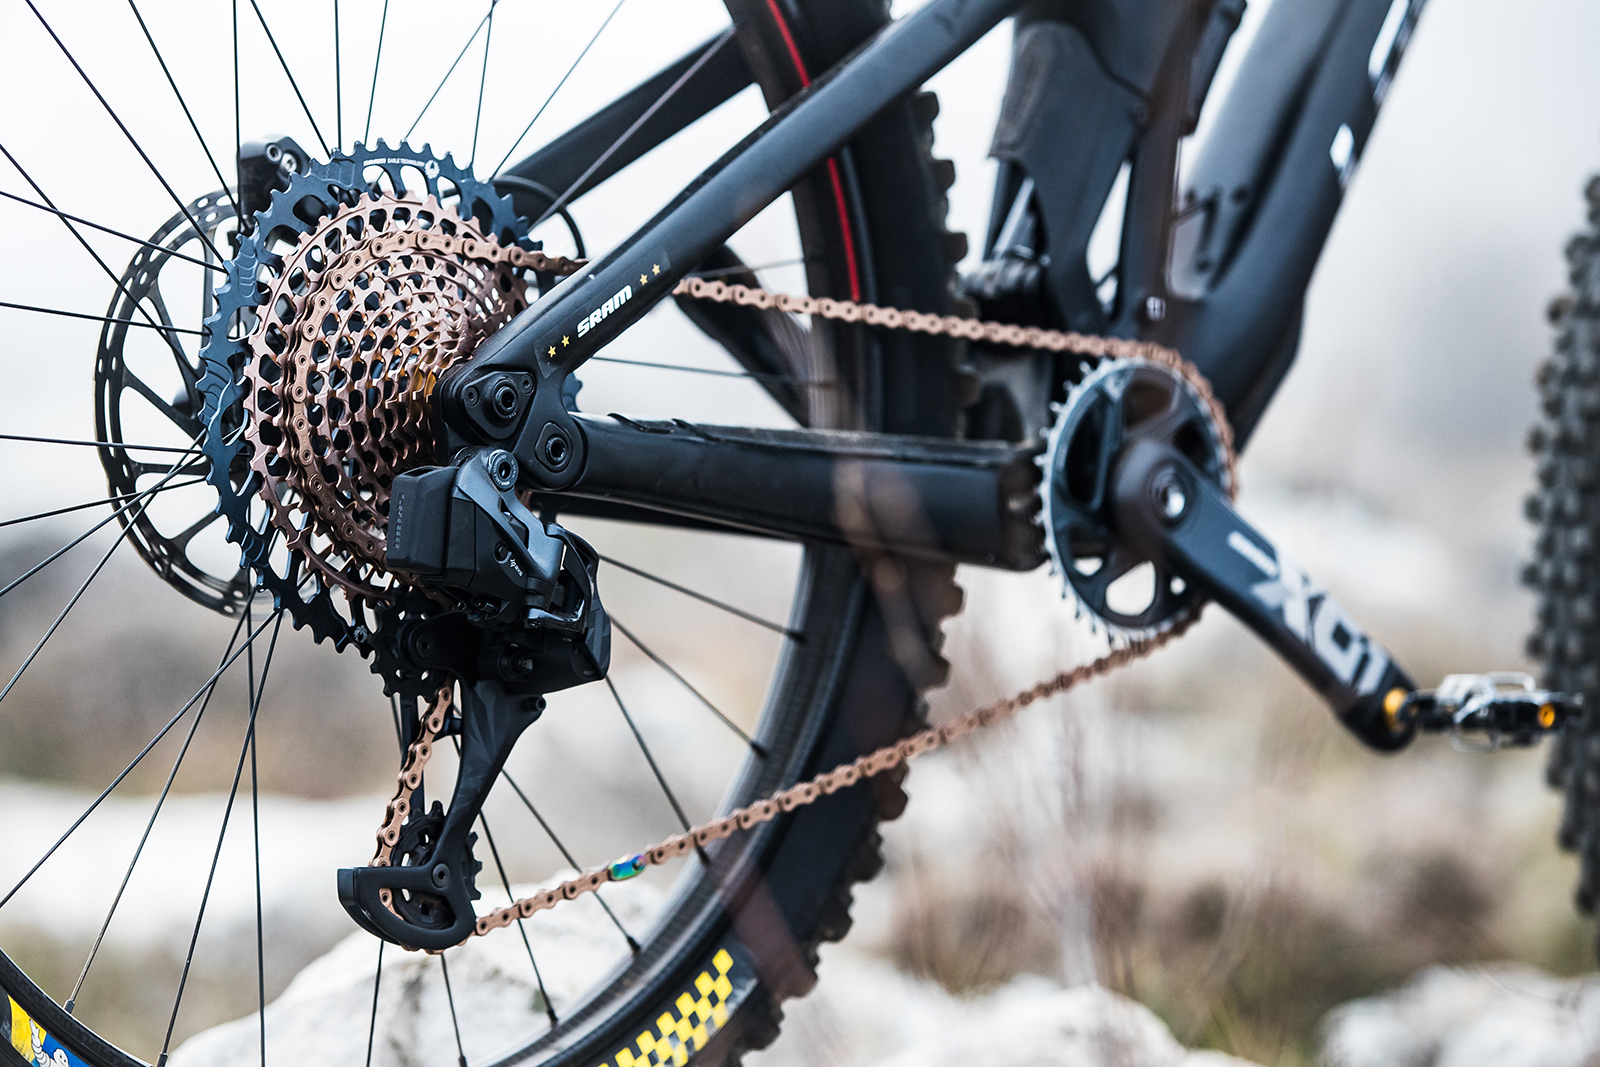 SRAM's electronic Eagle AXS derailleurs are compatible with the new wide-range cassettes.